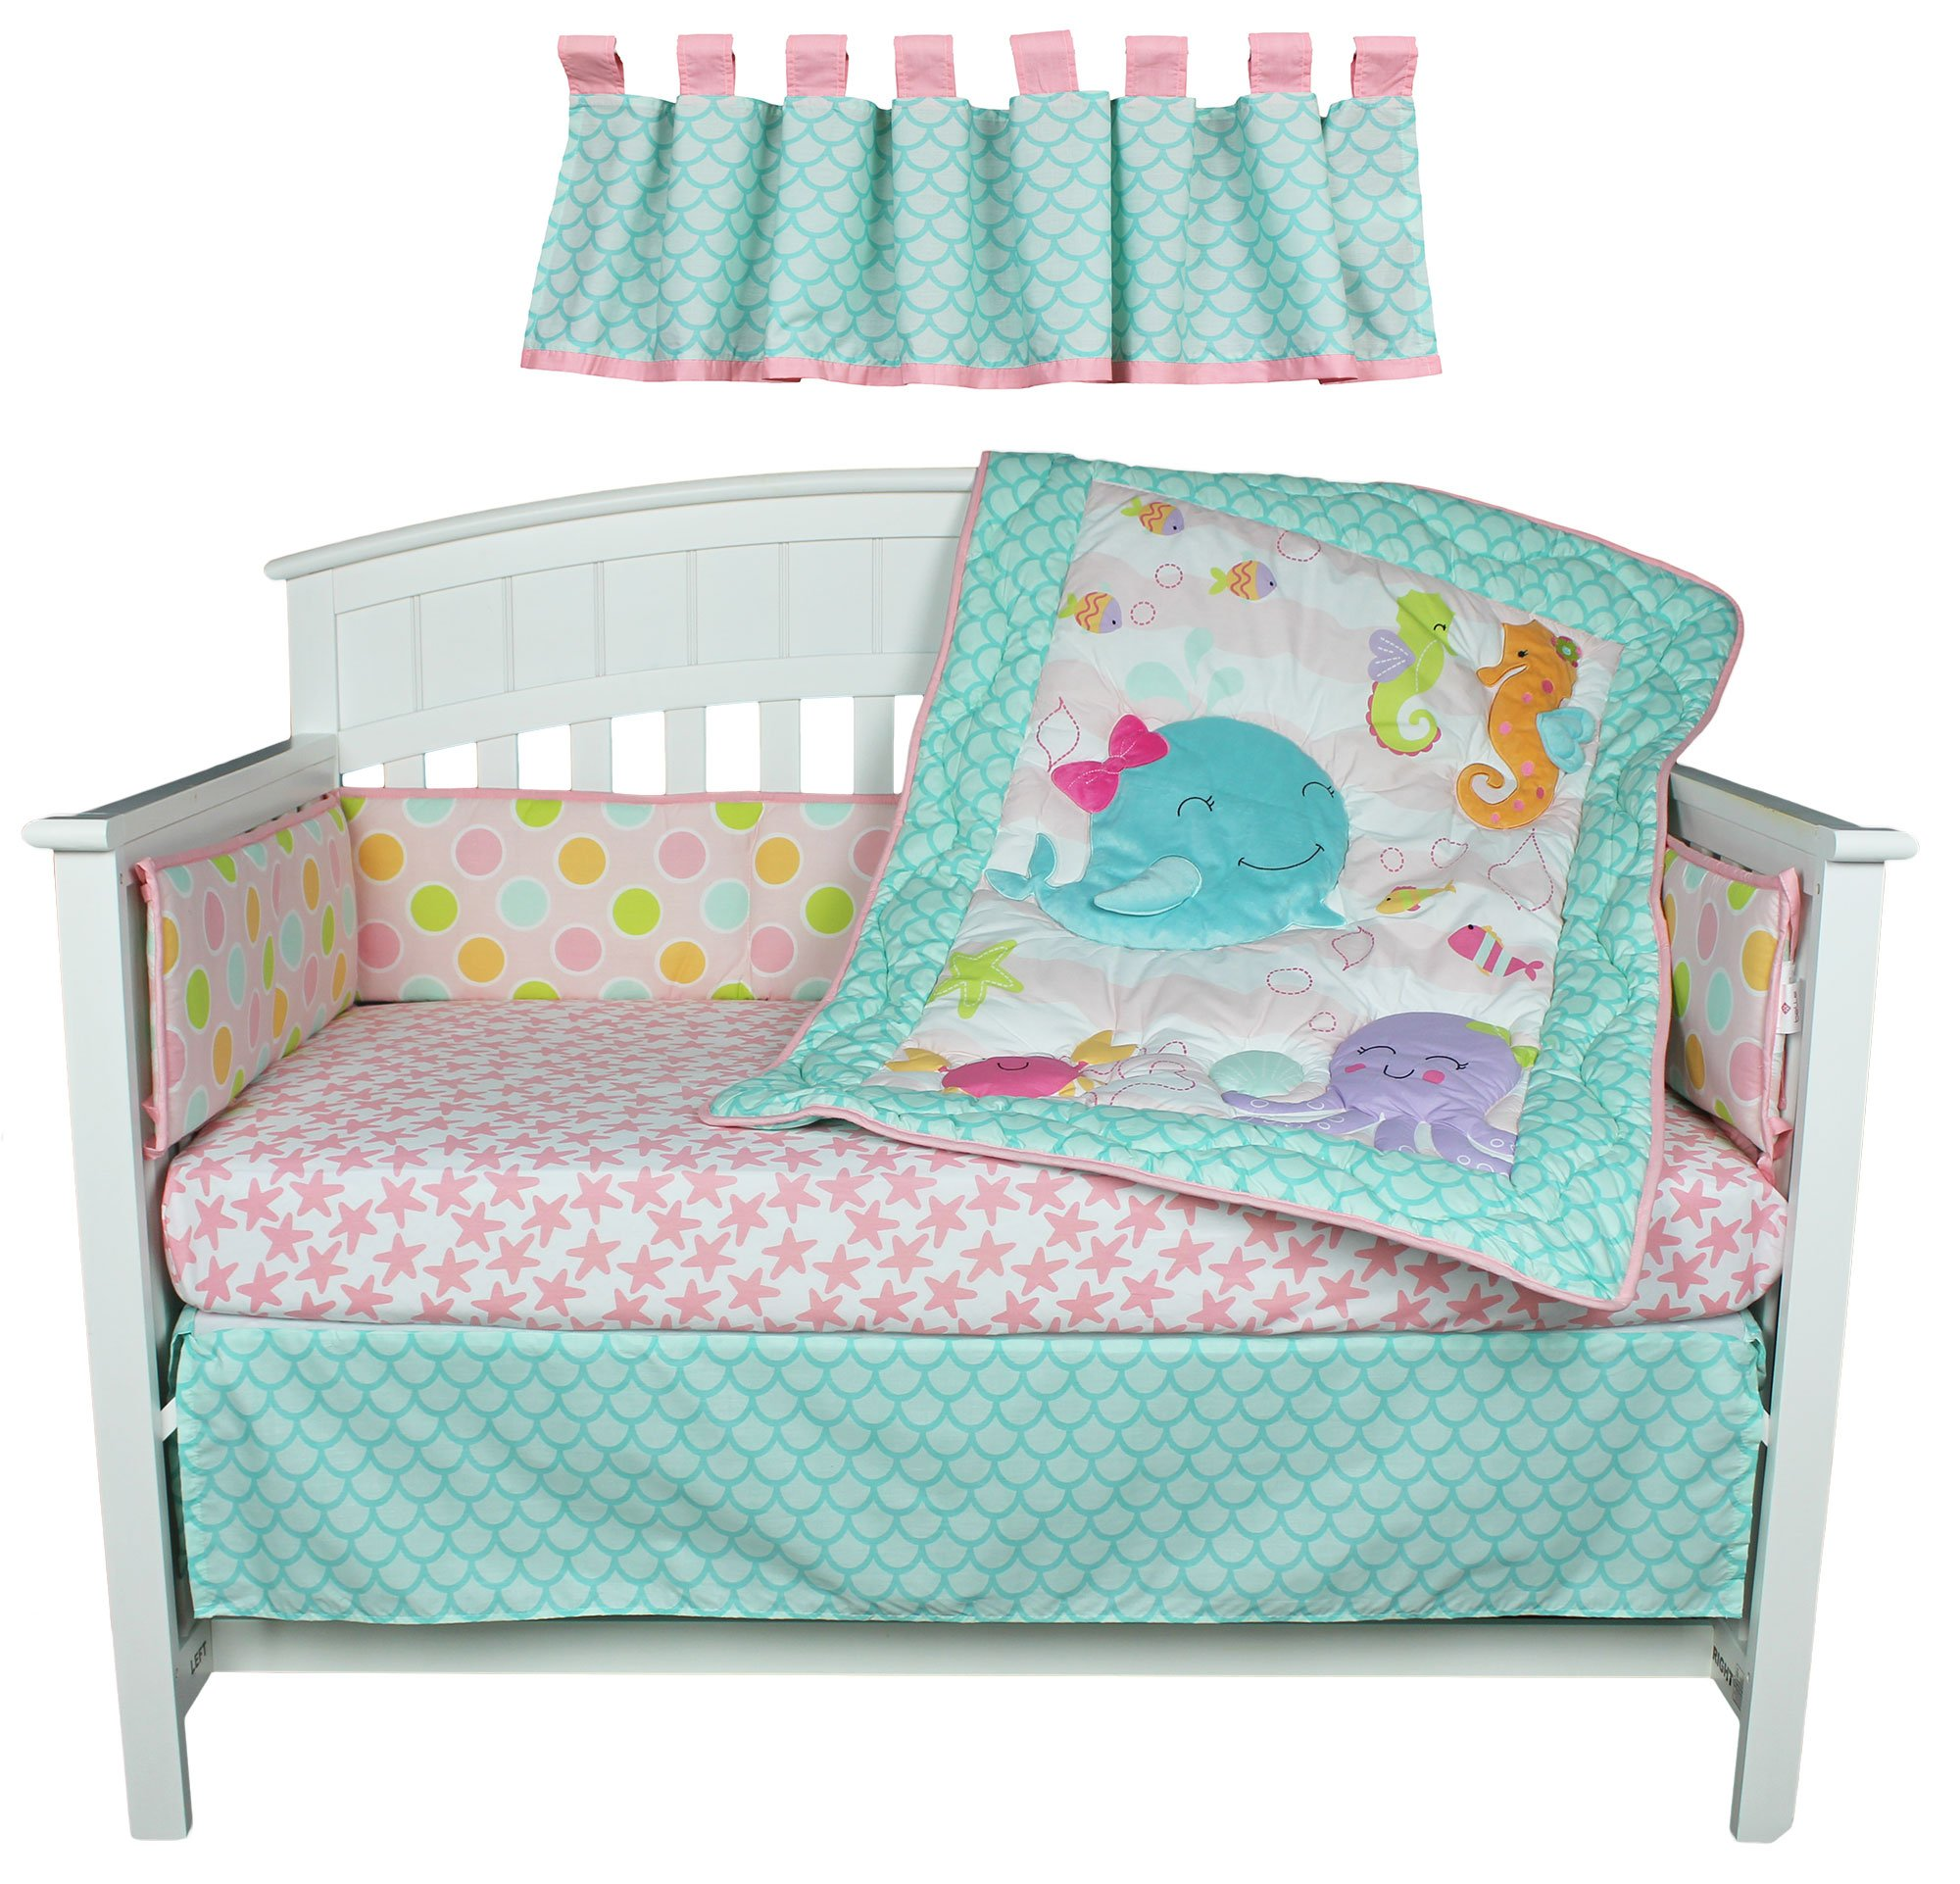 Sea Sweeties Pink and Blue Ocean 5 Piece Baby Girl Crib Bedding with Bumper by Belle by Belle (Image #4)